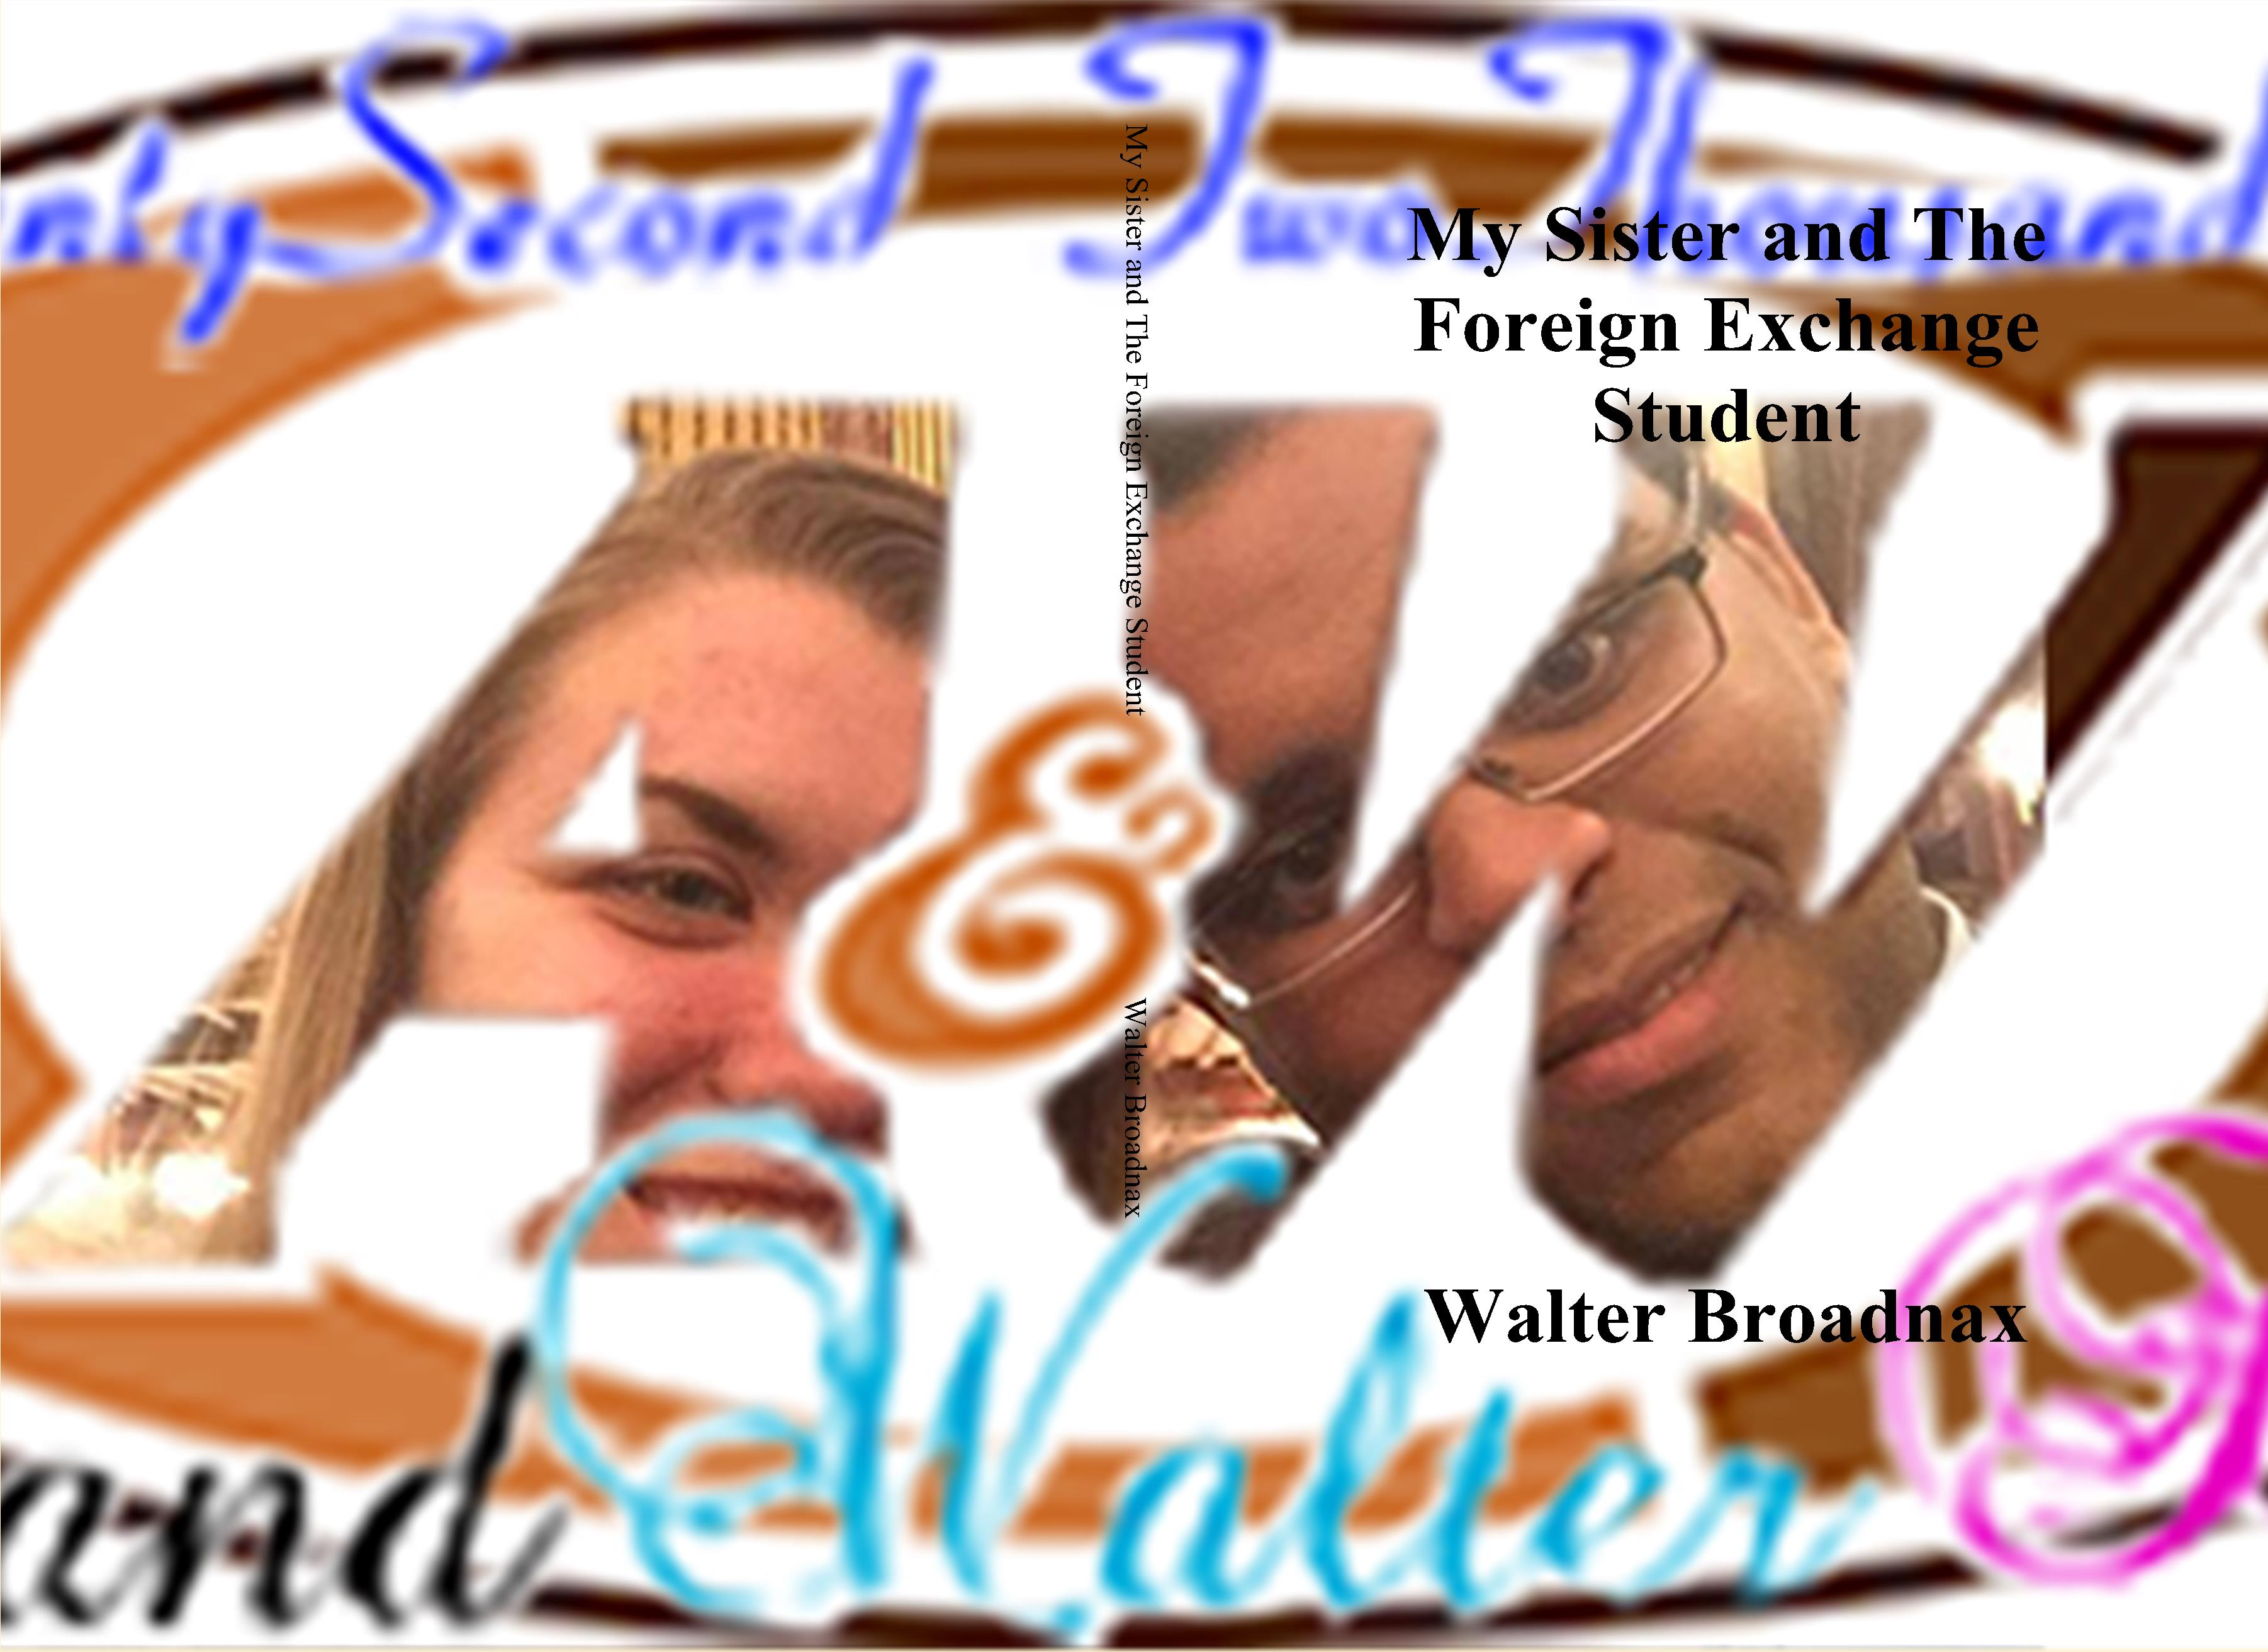 My Sister and The Foreign Exchange Student cover image